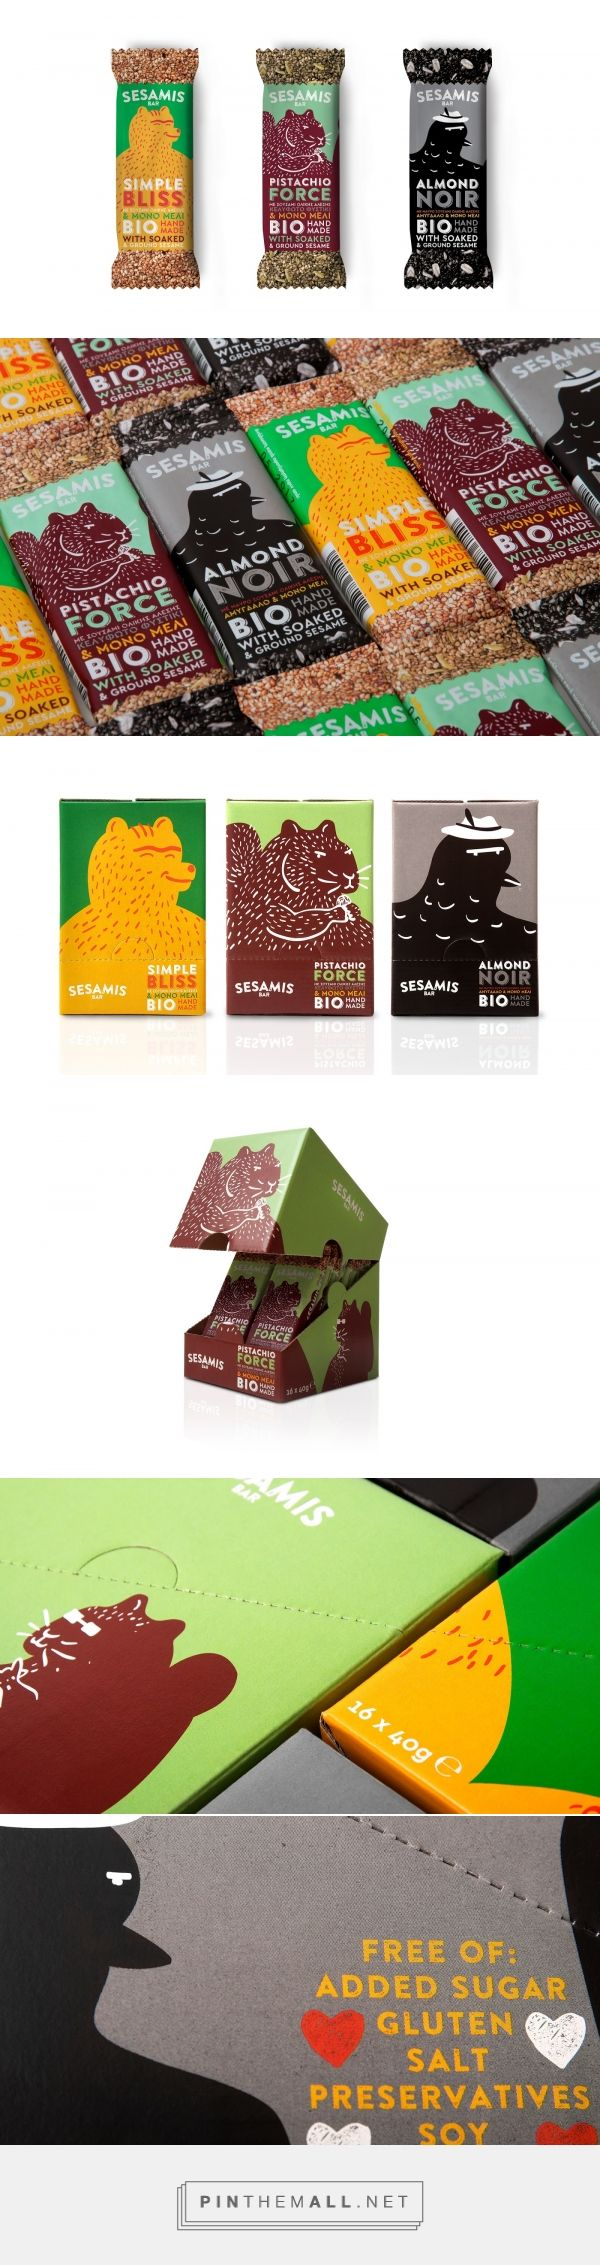 Sesamis Bars packaging design by k2design - http://www.packagingoftheworld.com/2017/04/sesamis-bars.html